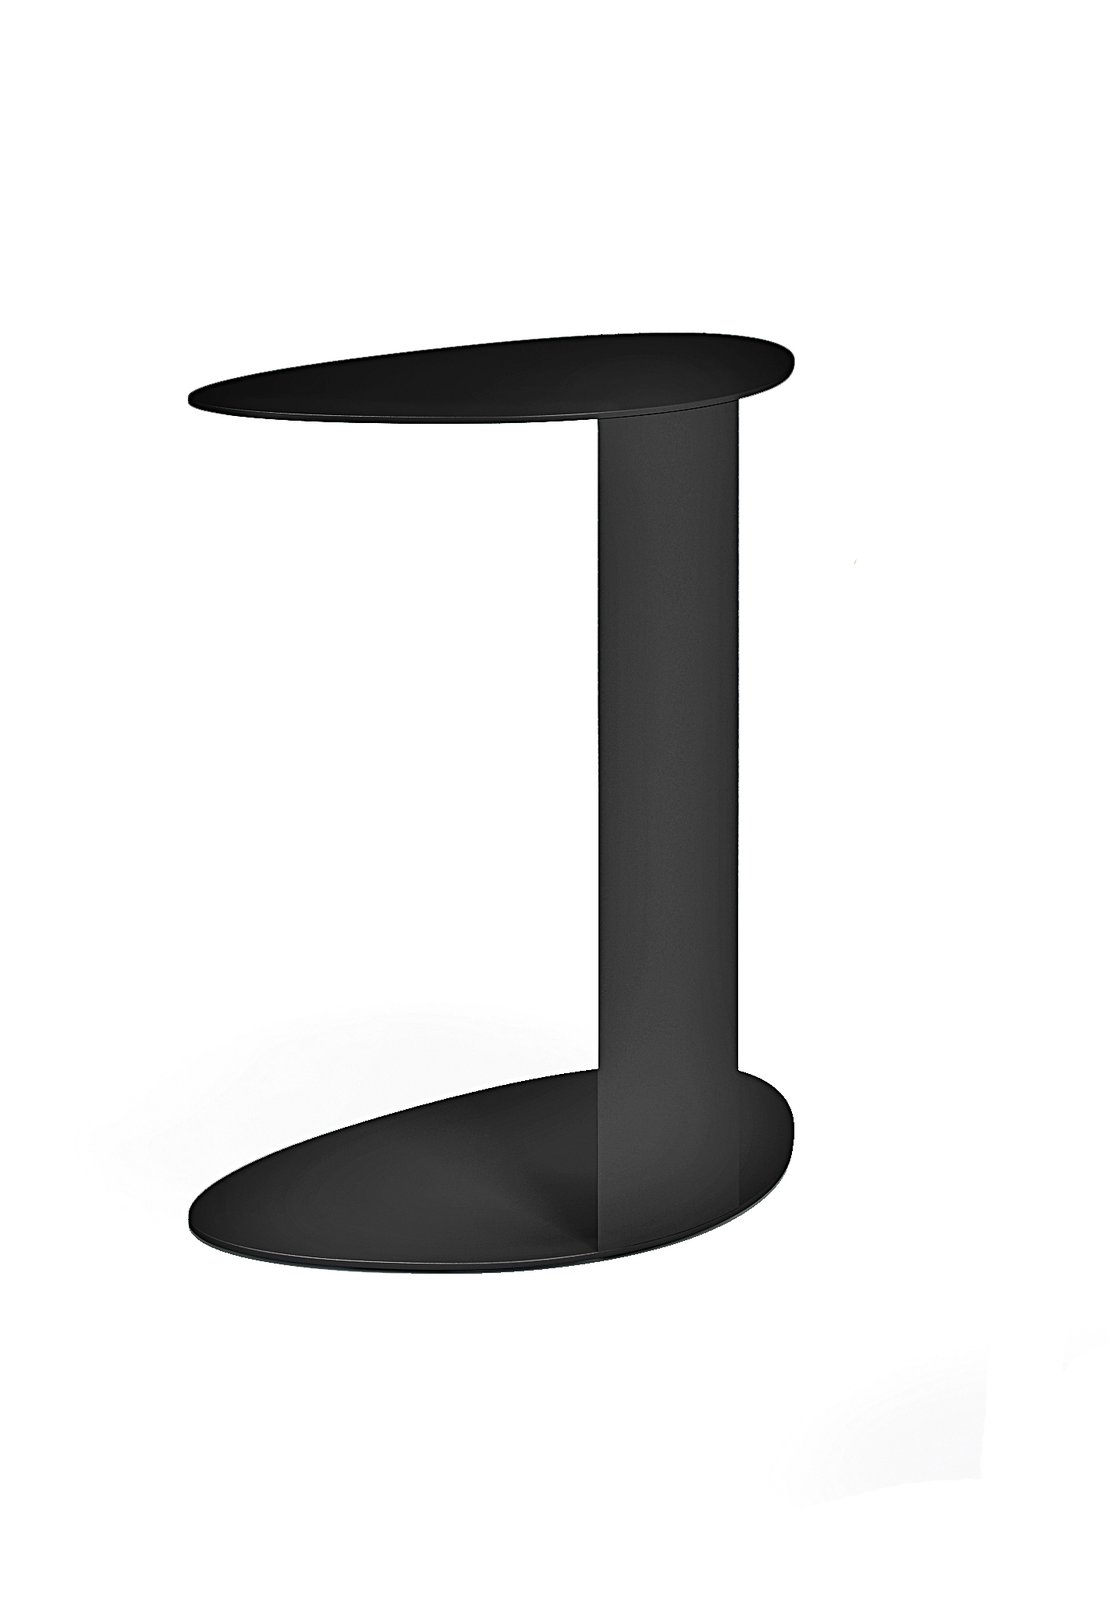 Photo Of In Product Spotlight Modern Side Tables Dwell - Bink mobile media table